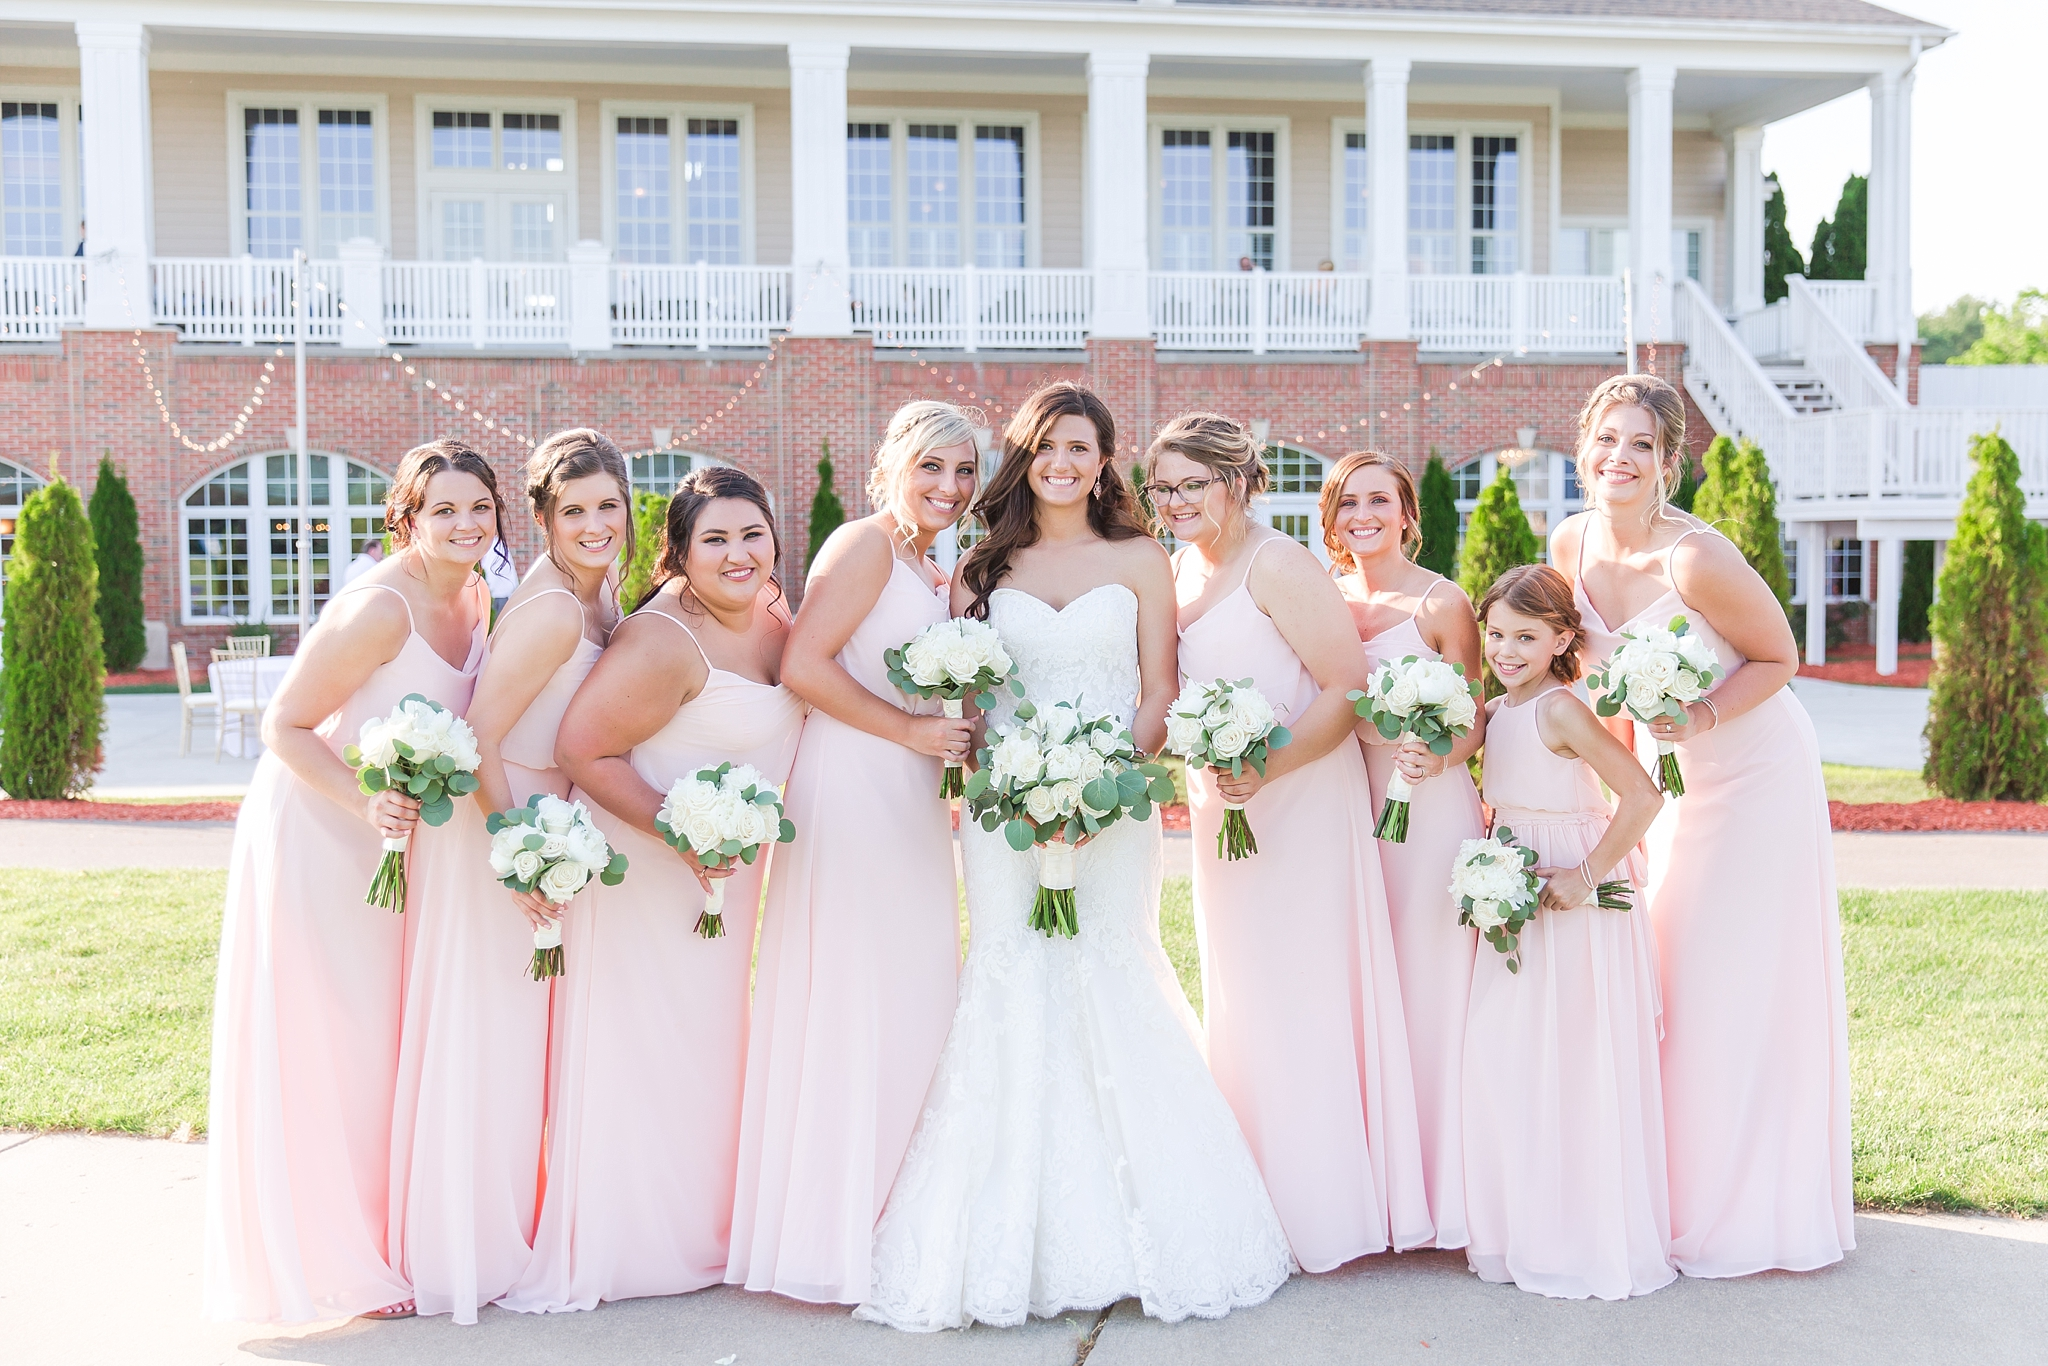 candid-timeless-wedding-photos-at-the-captains-club-in-grand-blanc-michigan-by-courtney-carolyn-photography_0066.jpg